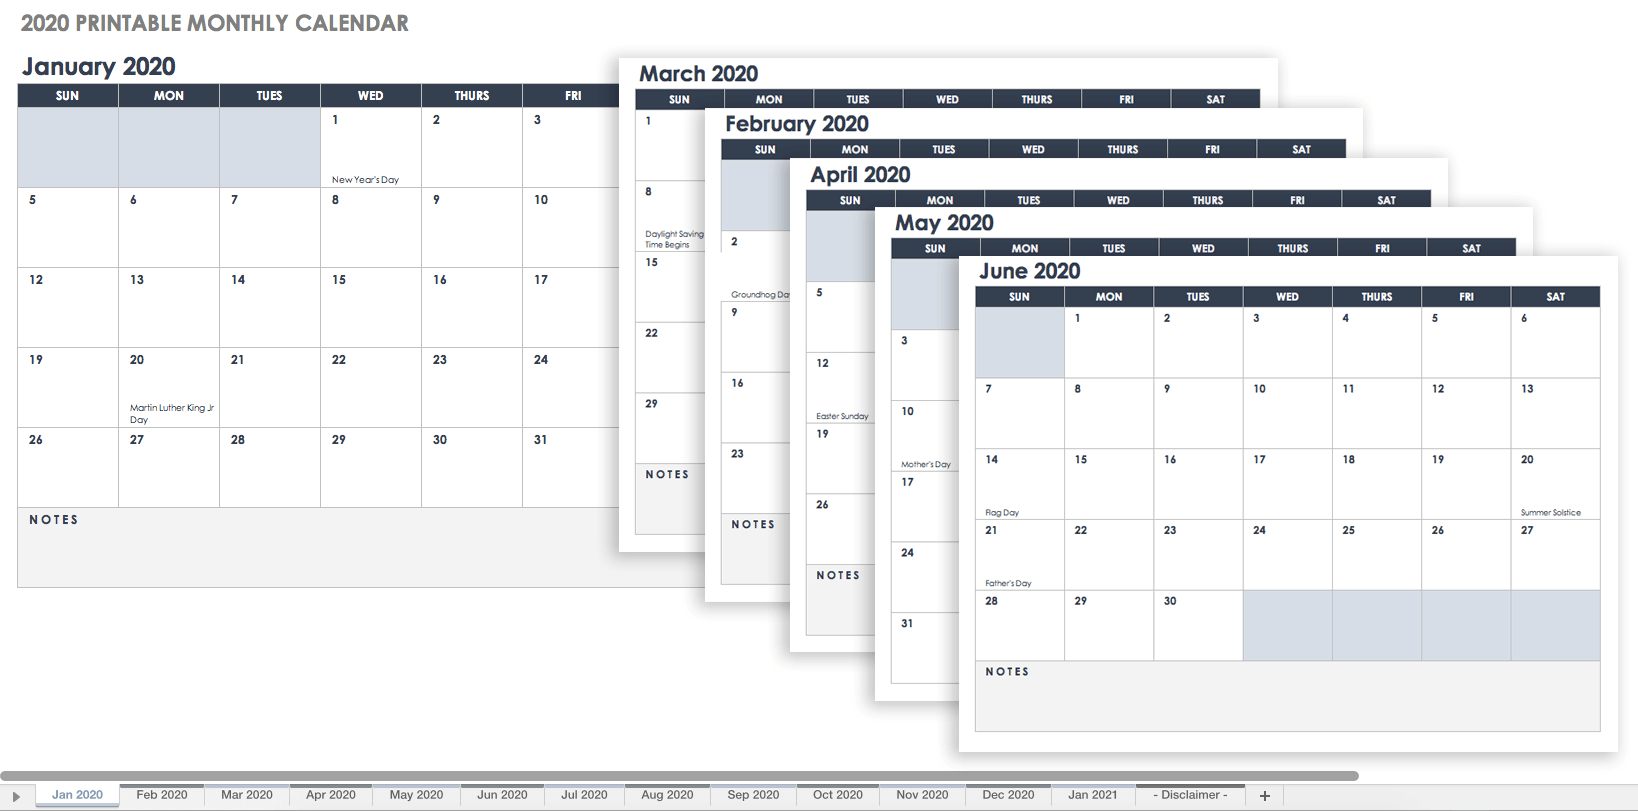 15 Free Monthly Calendar Templates | Smartsheet with regard to Blank Monthly Calendars To Print